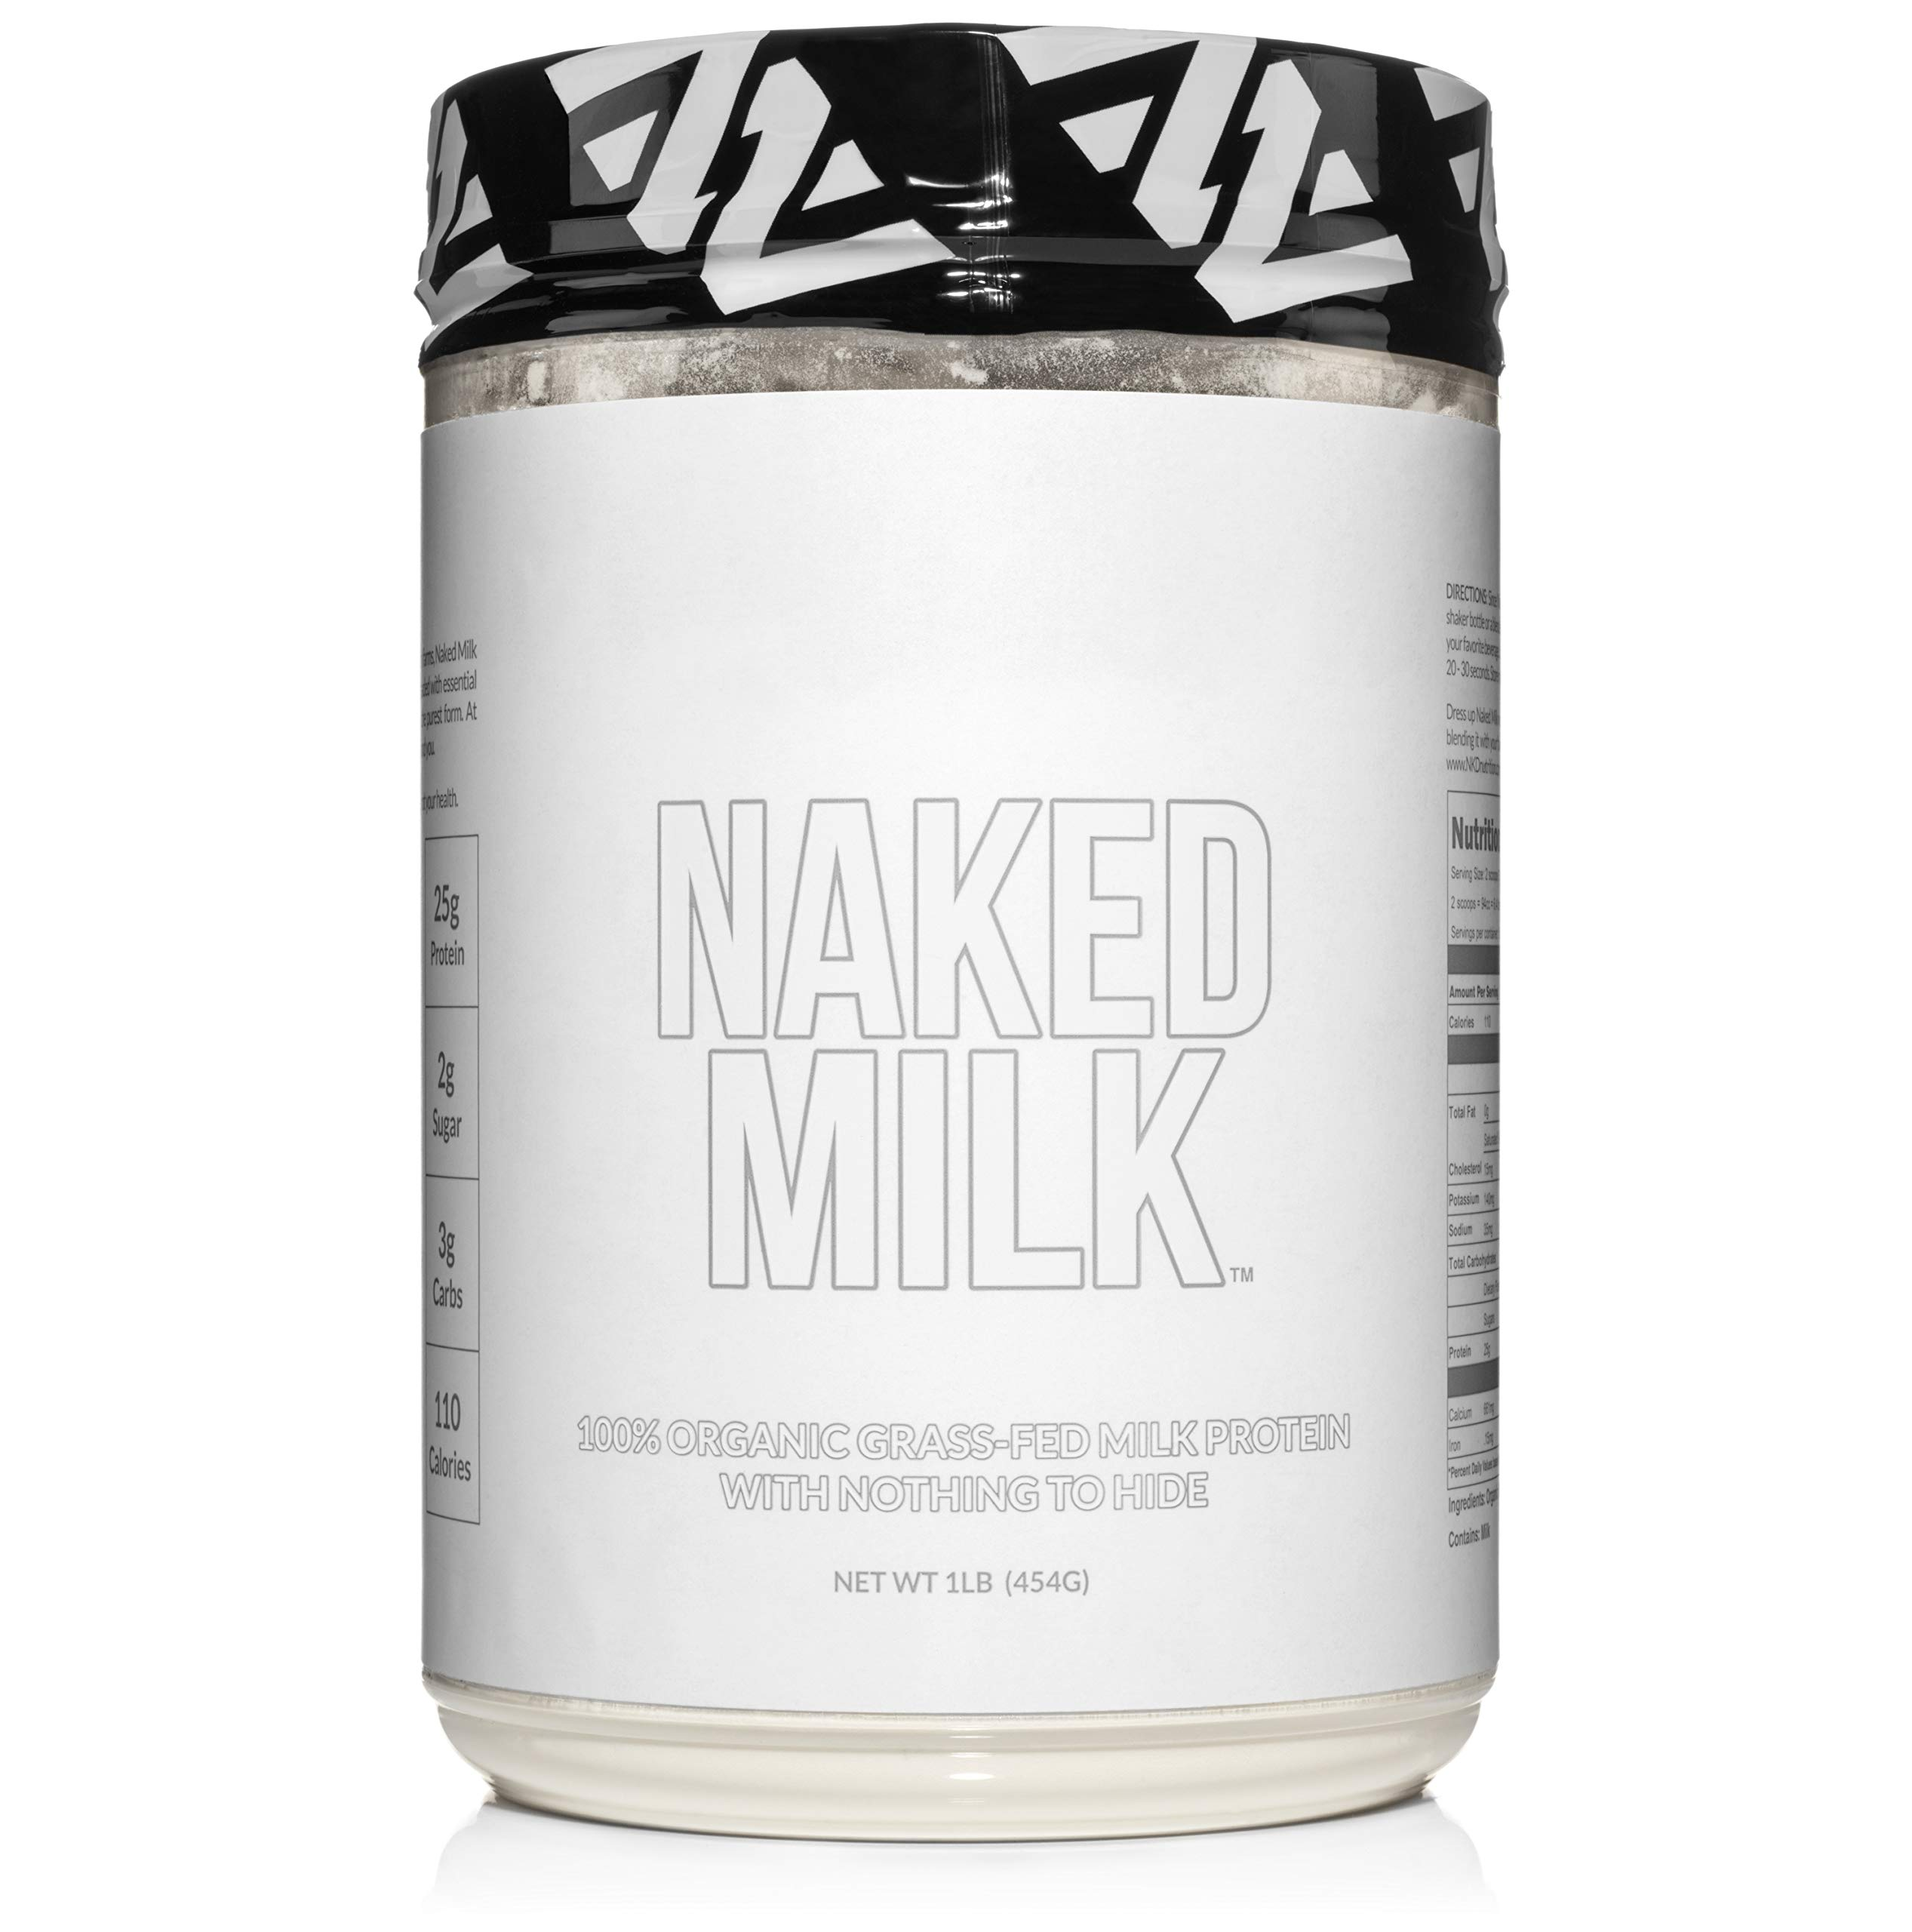 Naked Milk - 1LB 100% Organic Milk Protein Concentrate from US Farms – Whey and Casein - GMO Free, Preservative Free - Enhance Muscle Growth - Promote Maximum Recovery - 15 Servings